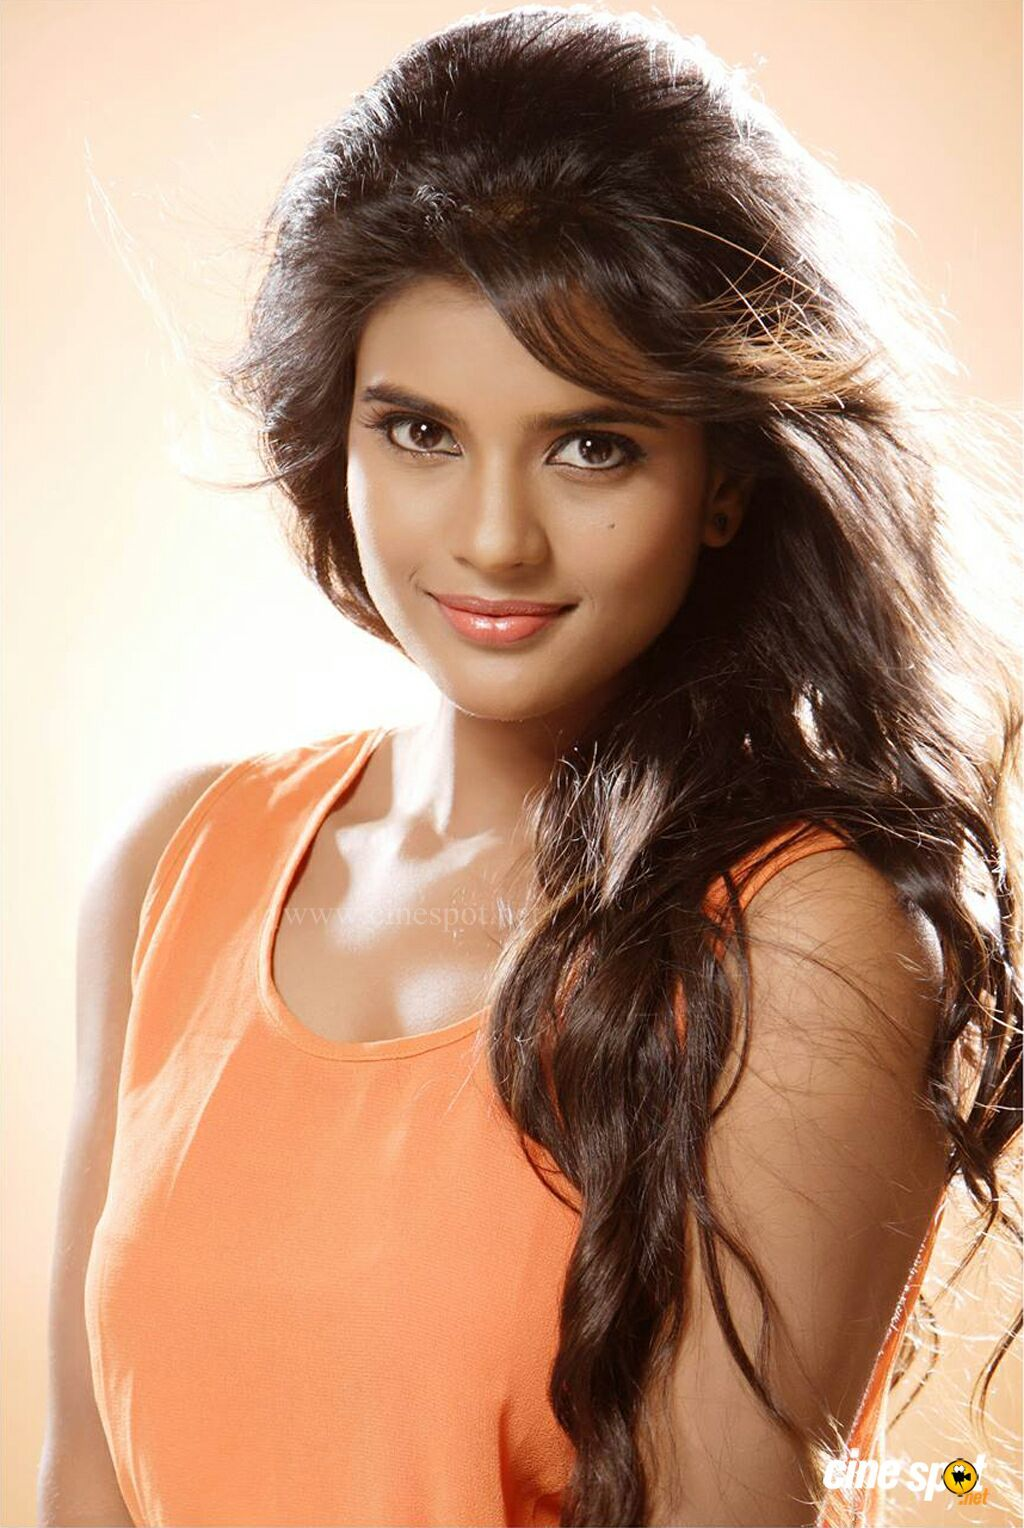 download video hair style aishwarya rajesh hd photos 1080p 11546 t 6353 | 31526988a002a205159752265e2147ce